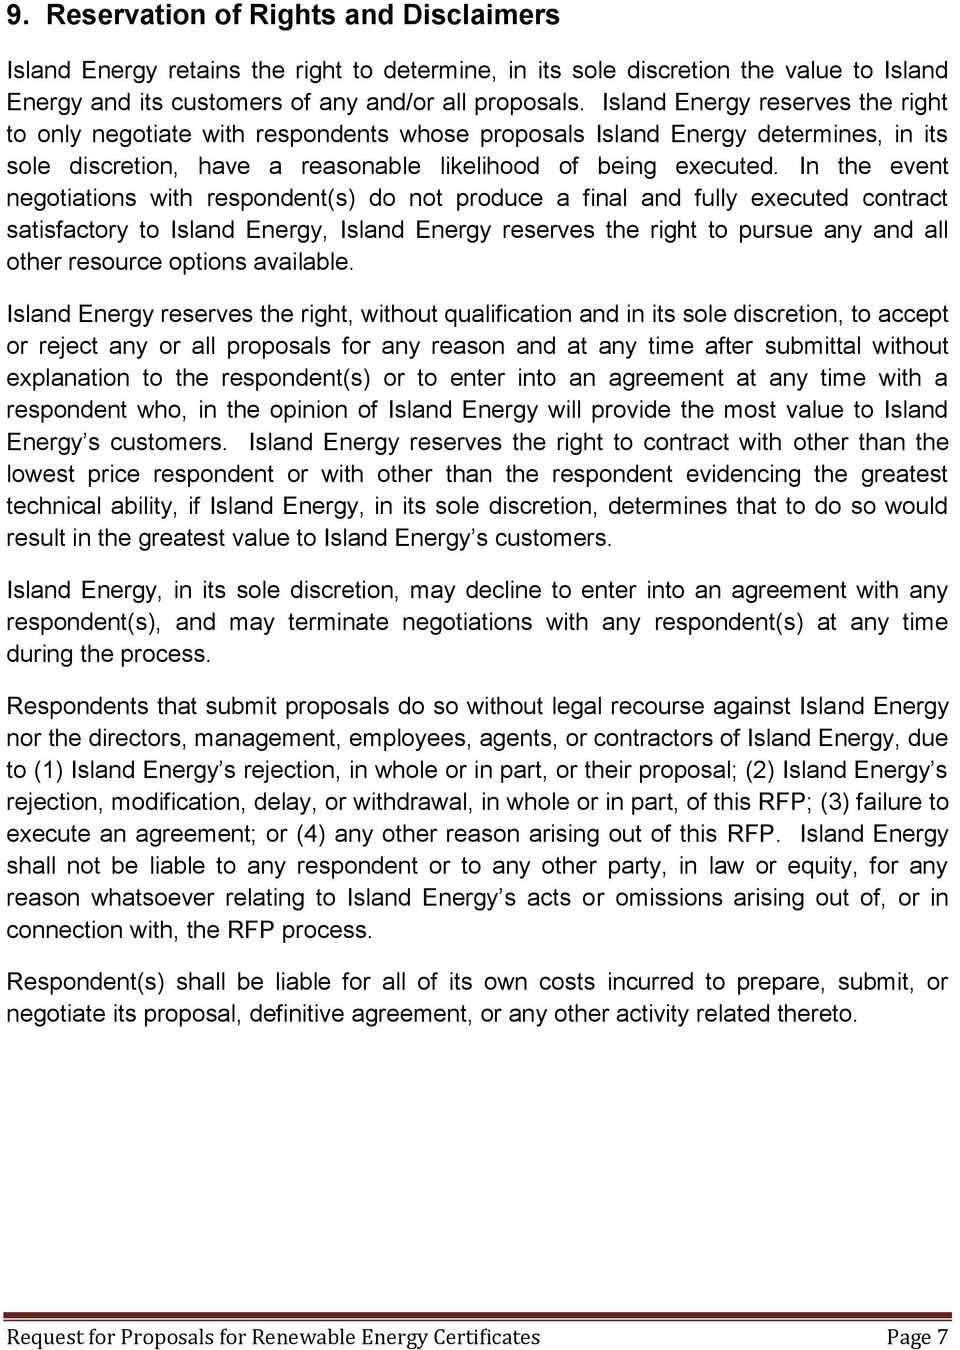 In the event negotiations with respondent(s) do not produce a final and fully executed contract satisfactory to Island Energy, Island Energy reserves the right to pursue any and all other resource